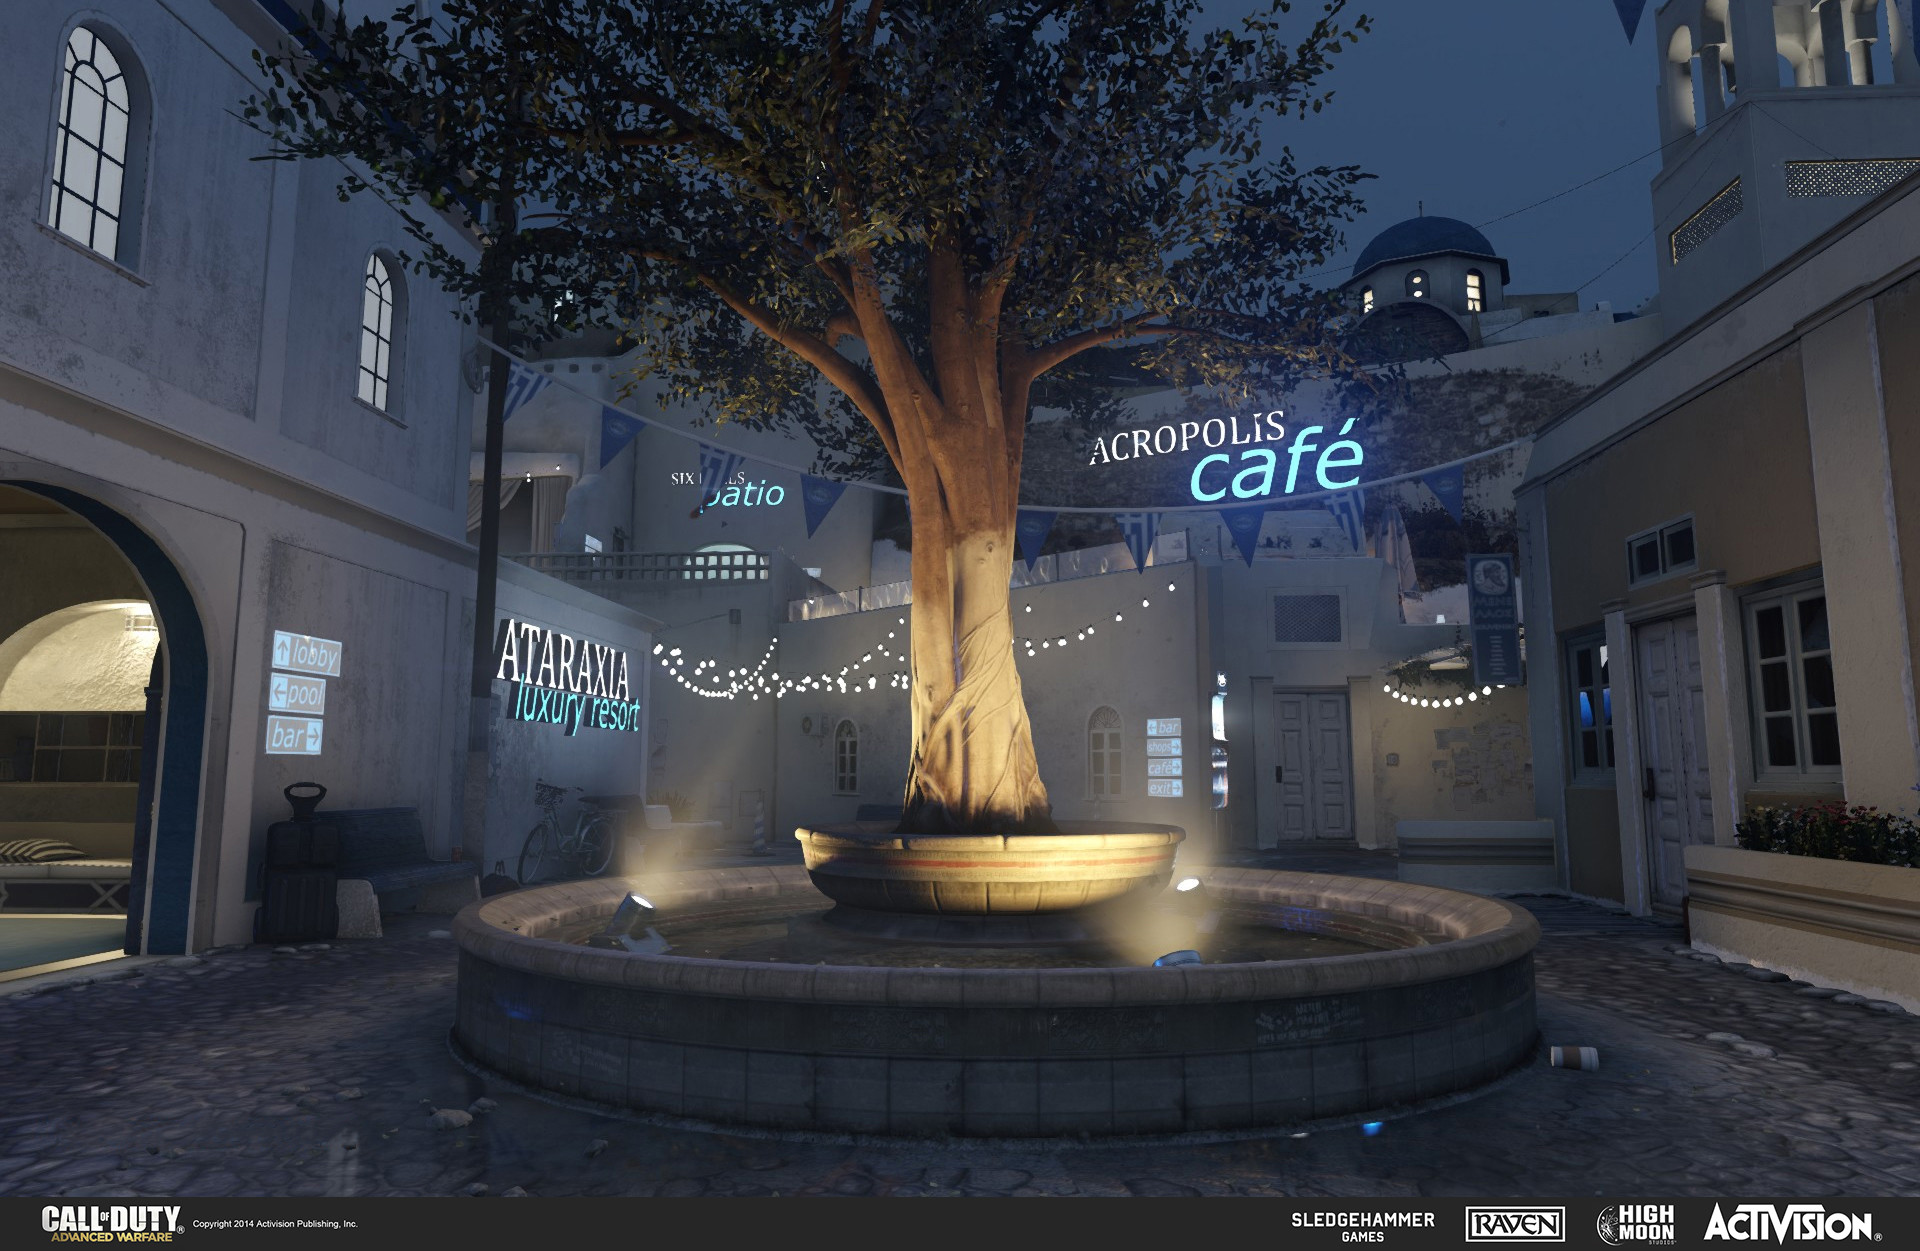 Geo work for fountain and light canisters in the multiplayer map Terrace. The fountain was created in the game engine and the light canisters in 3DSMax. Also in the background are hanging wires (for the lights) and lit signs, both created in 3DSMax.